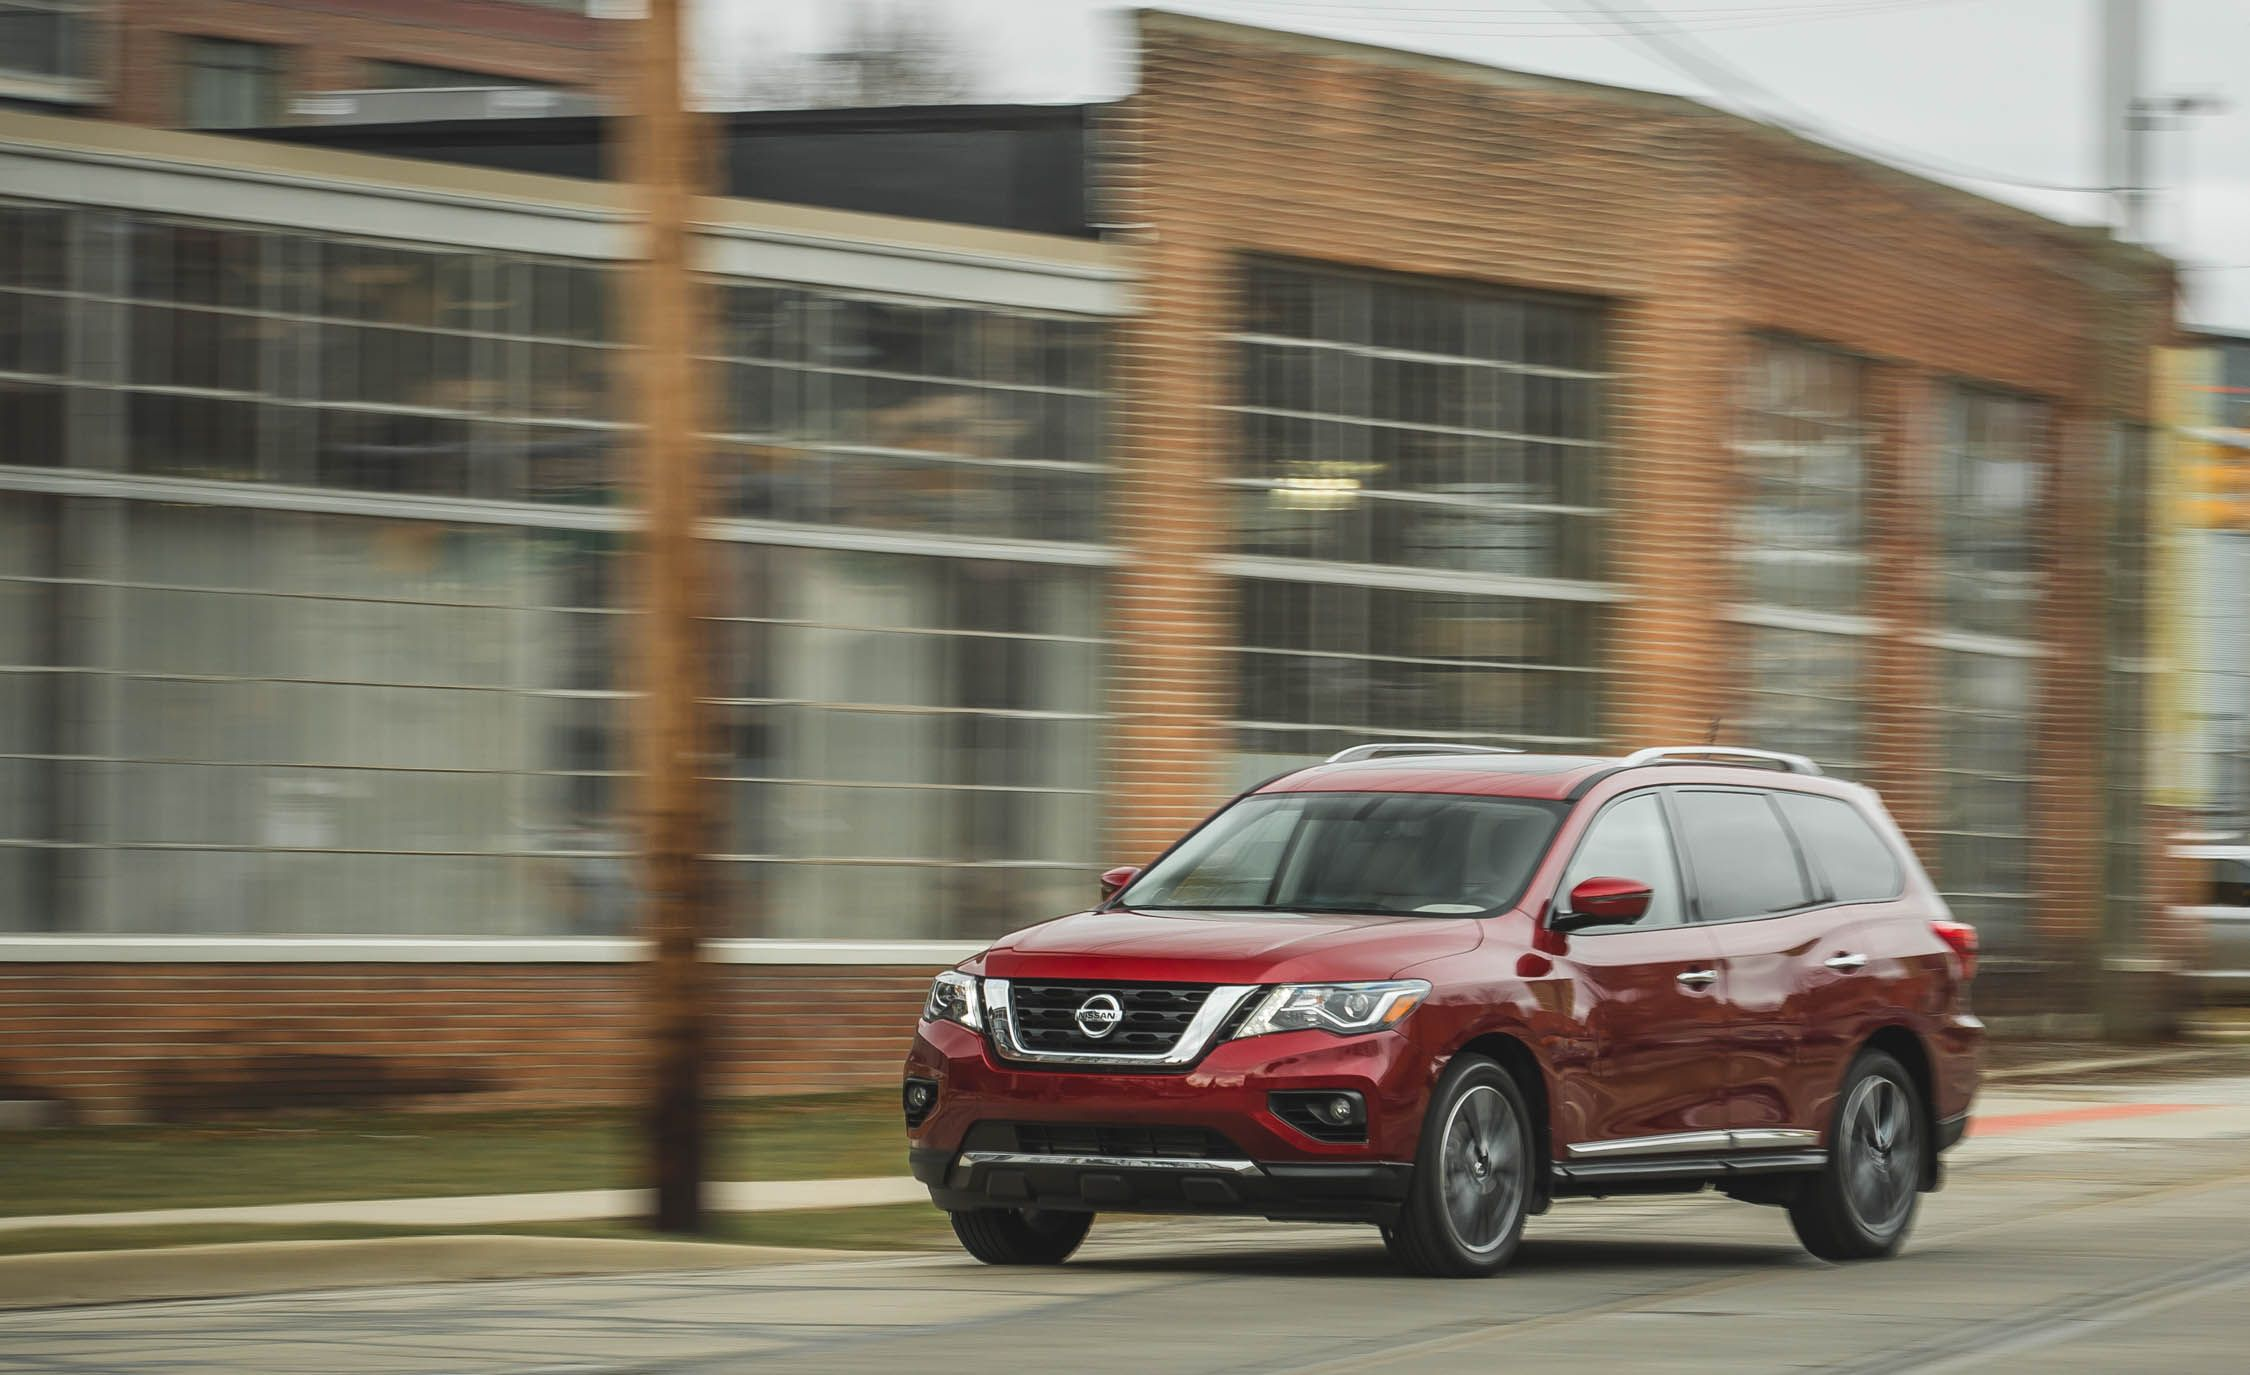 Nissan Pathfinder Reviews | Nissan Pathfinder Price, Photos, and Specs |  Car and Driver